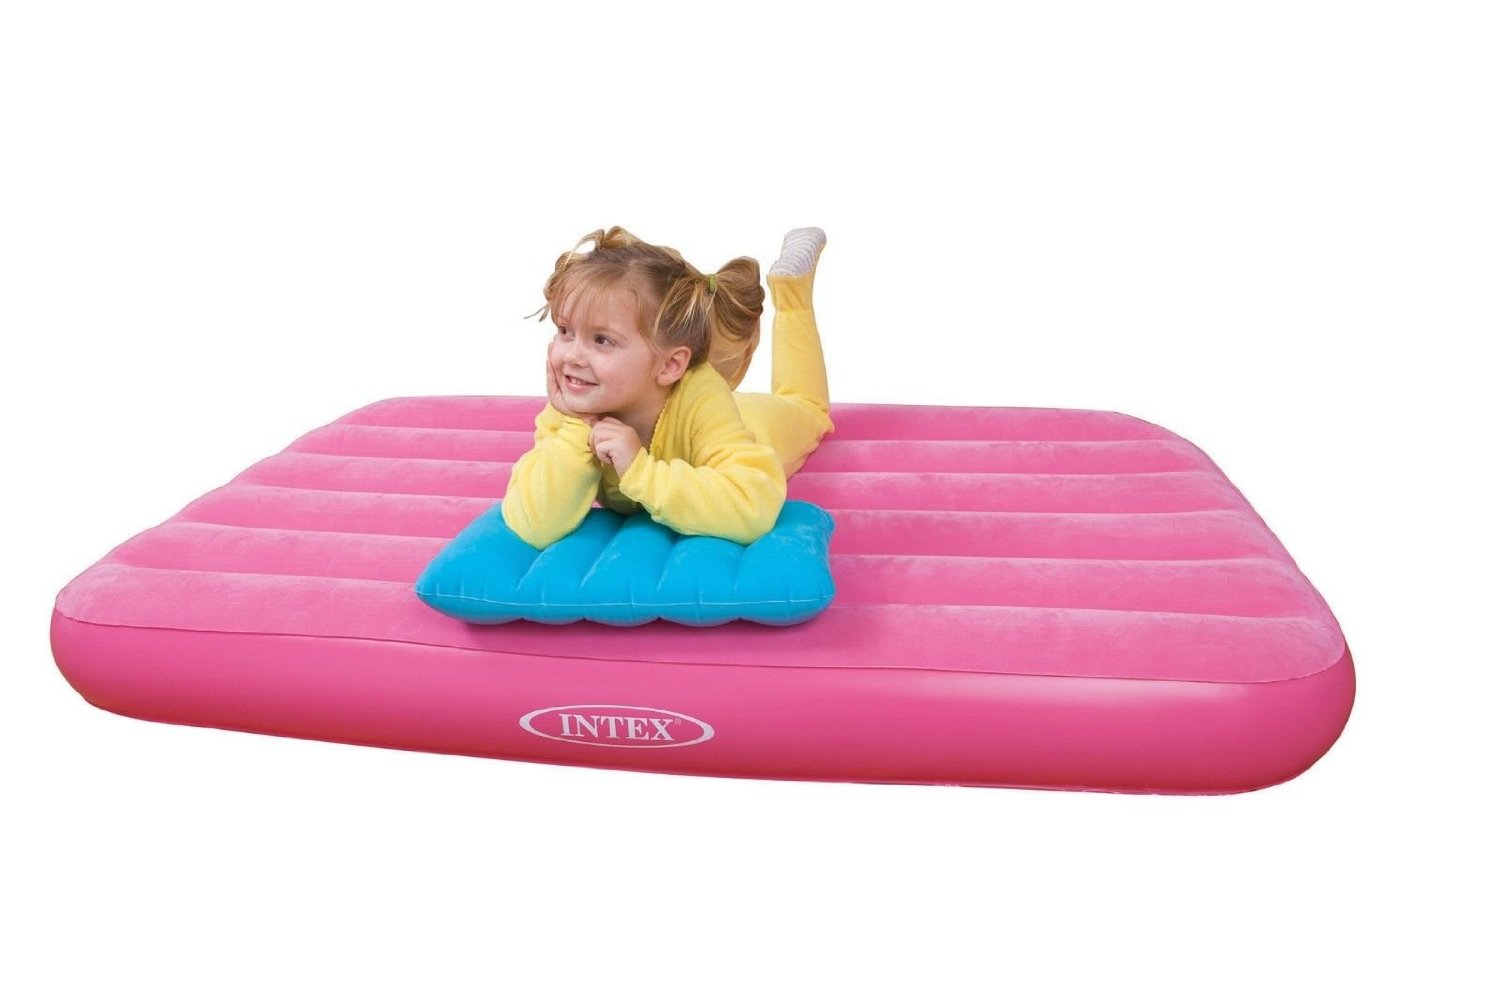 Air-Intex-Mattresses-Inflatable -Downy-Queen-Children-Sleeping Bed- living - outside - beach -2 - people - relax./Kids Bed with Pillow Pink